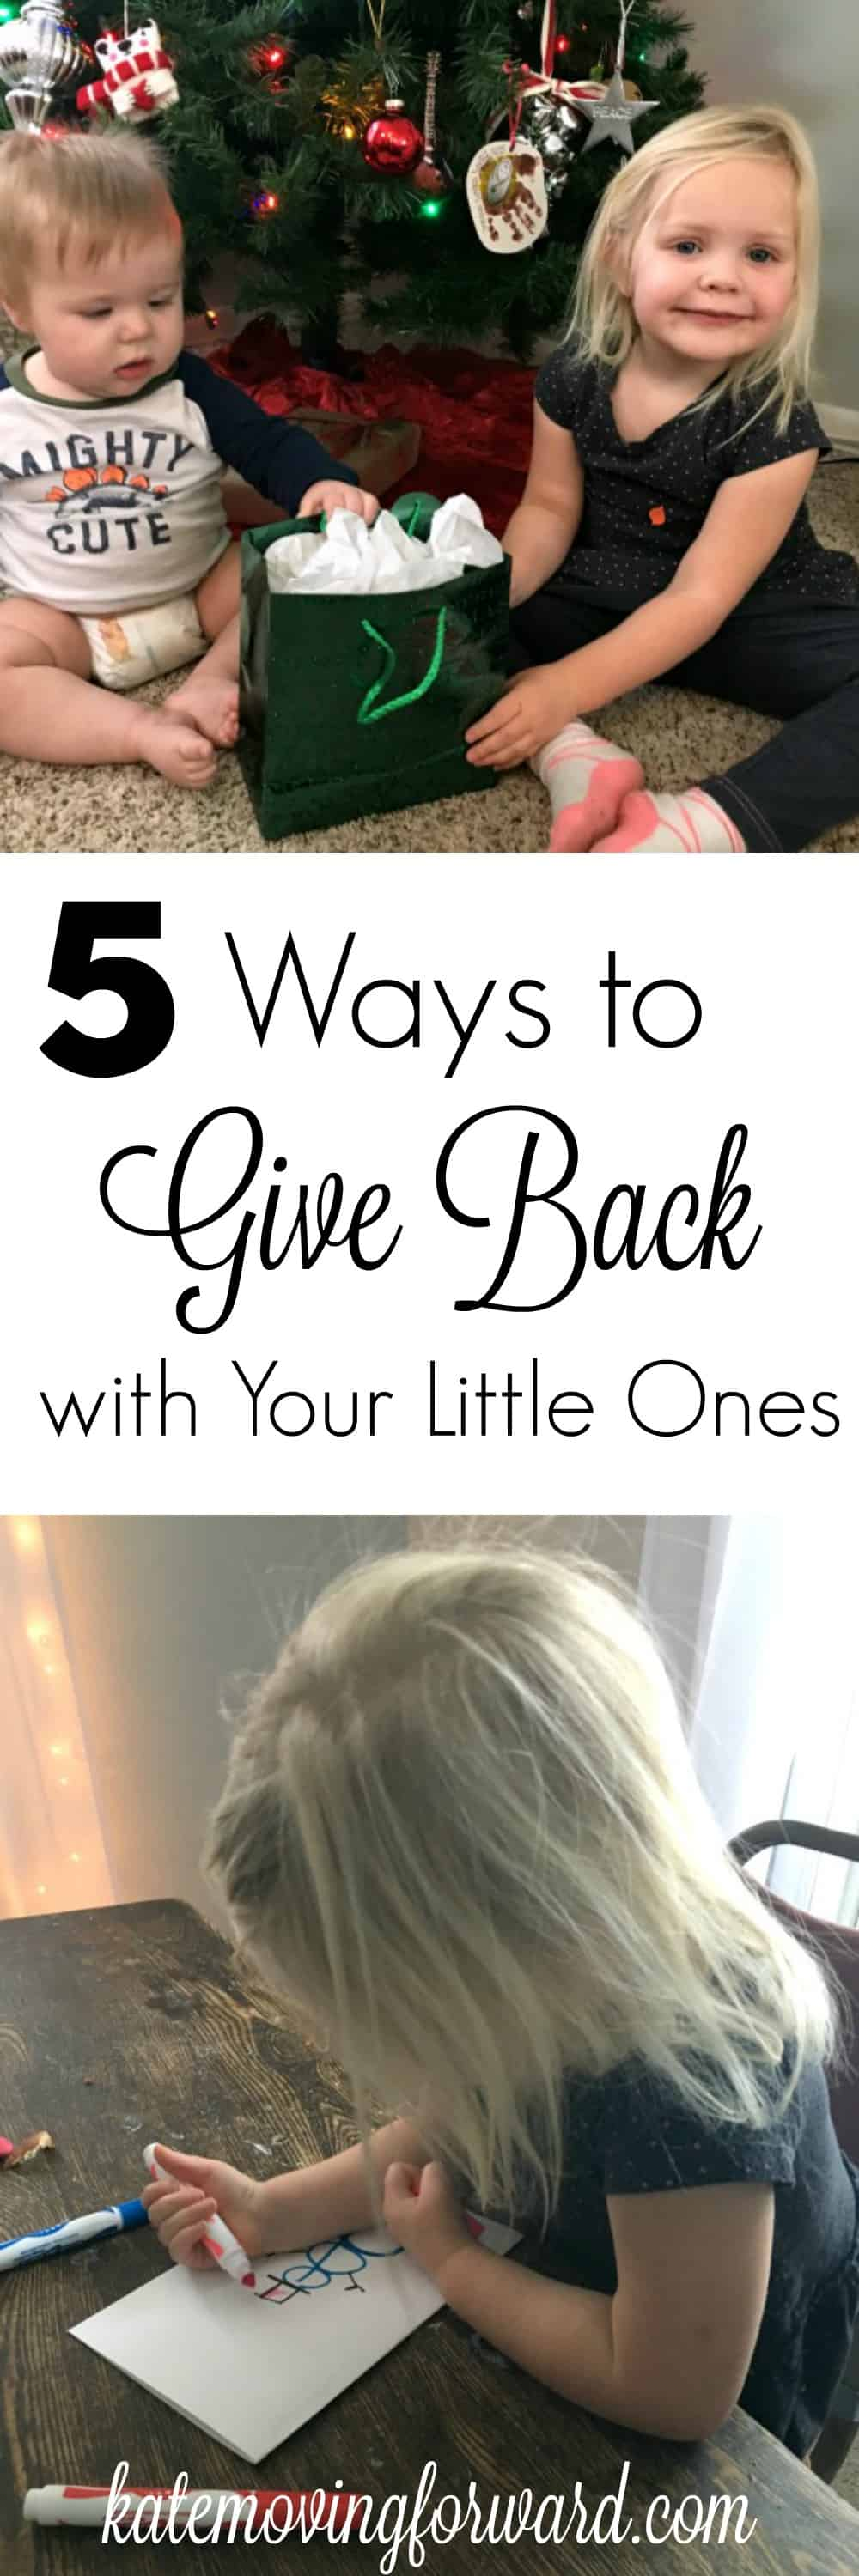 5 Ways to Give Back with Your Little One - Fun and practical ideas to teach your toddlers and preschoolers about giving and kindness at Christmas!